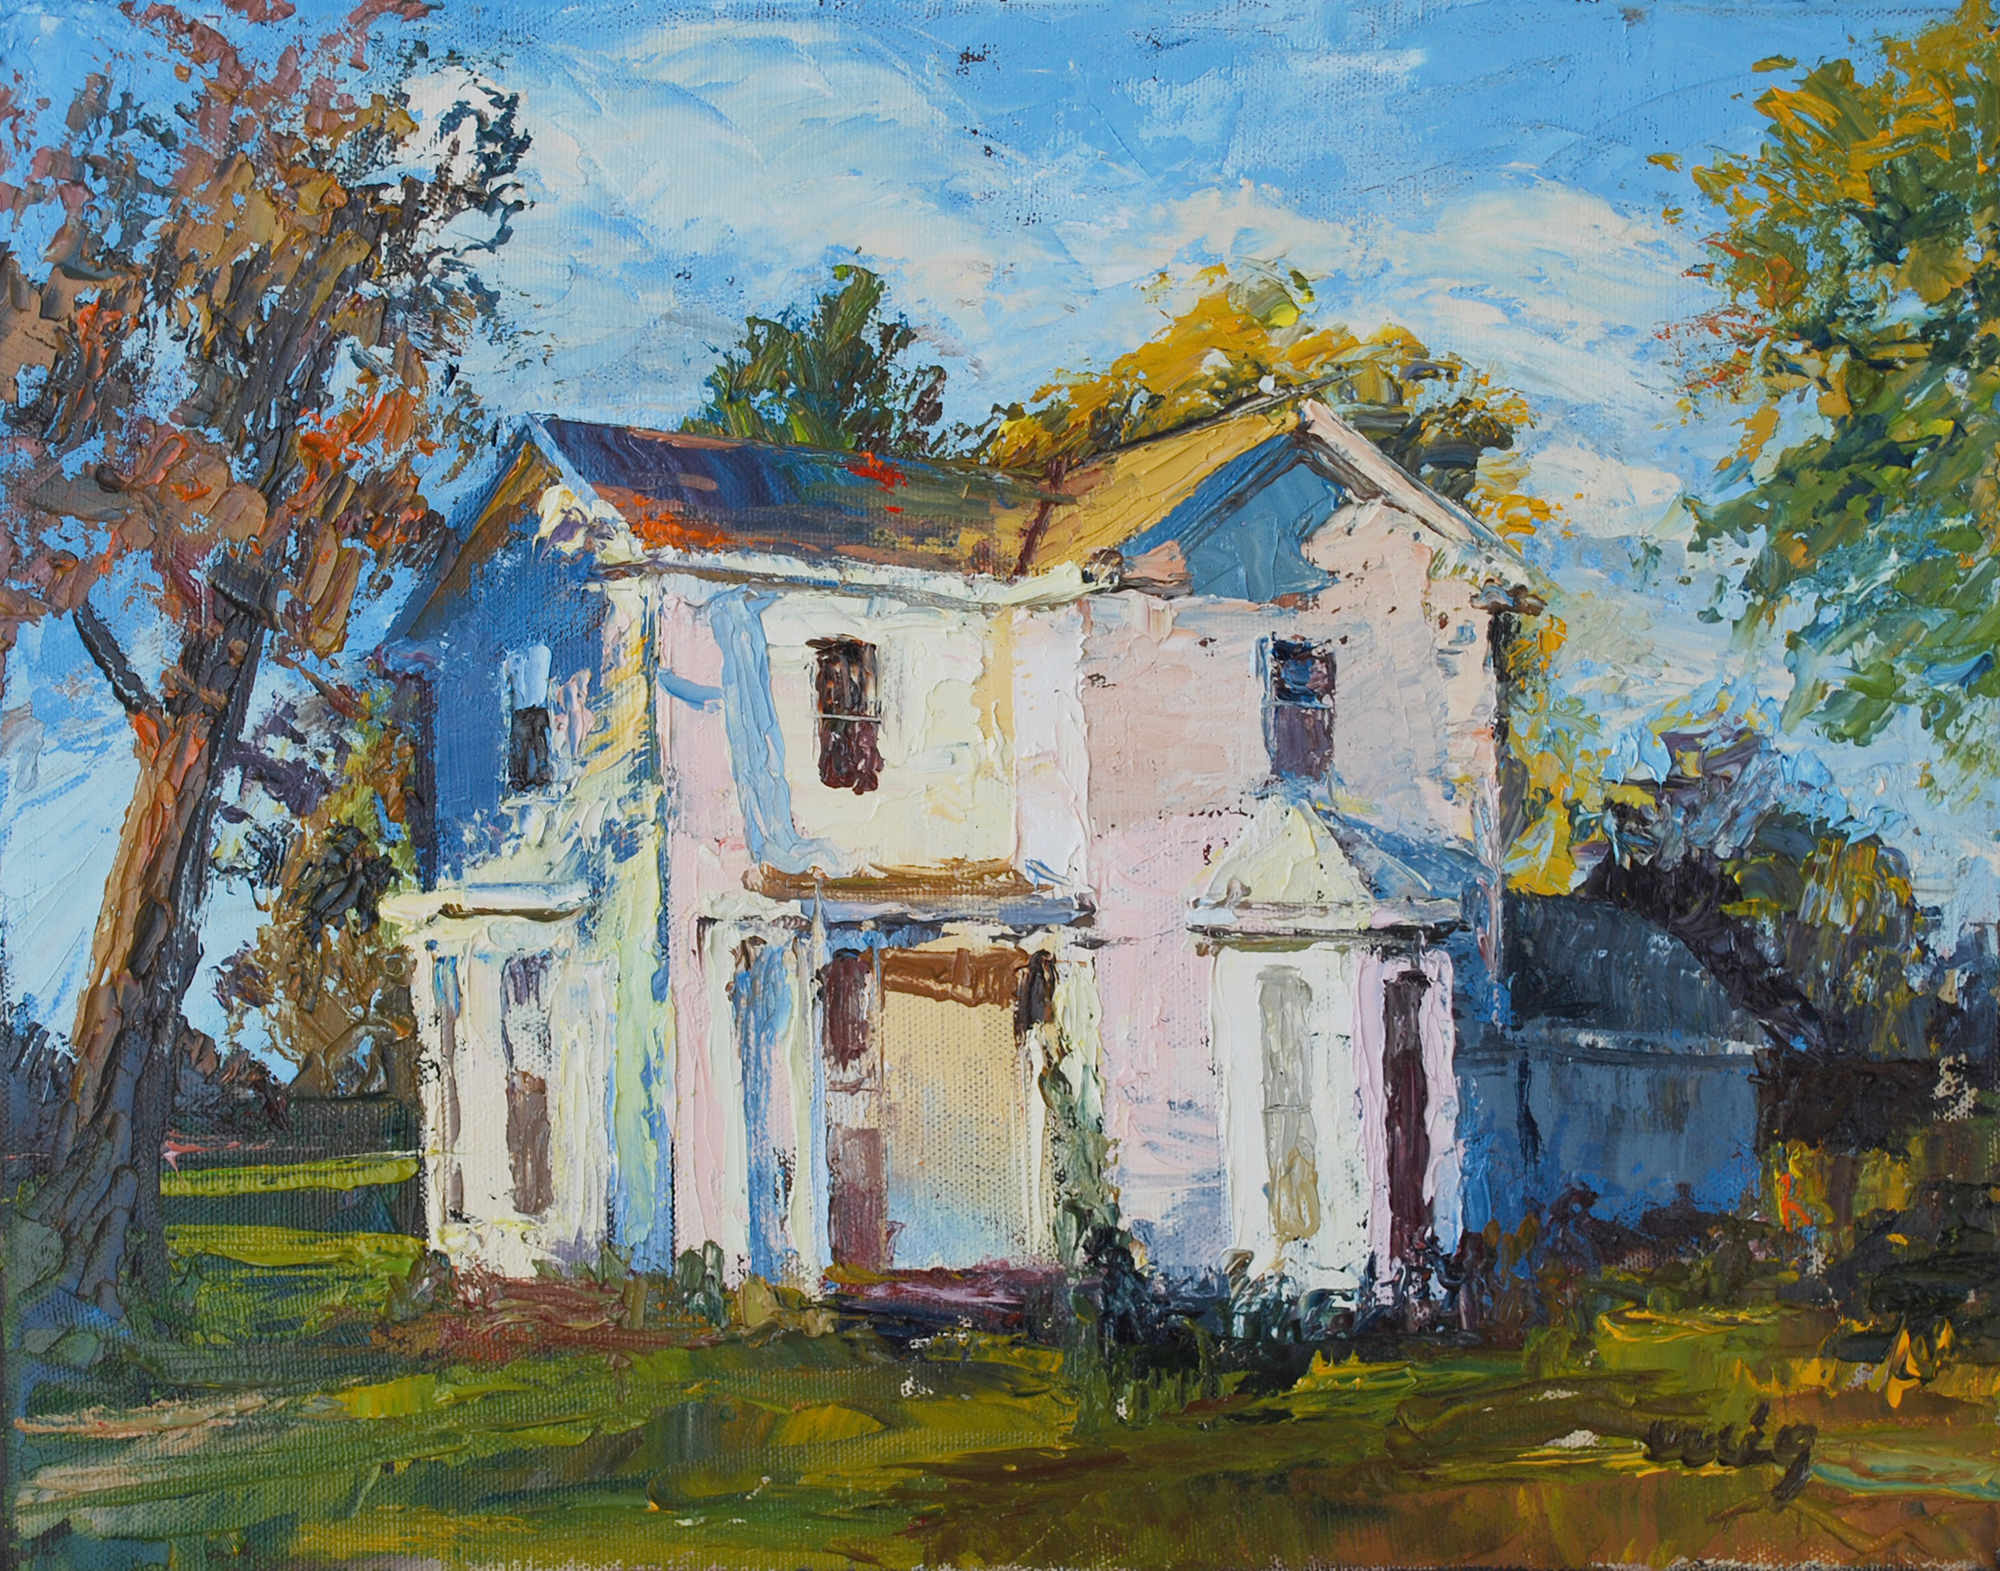 Painting stolen from cincinnati artist museum the for Oil paintings of houses